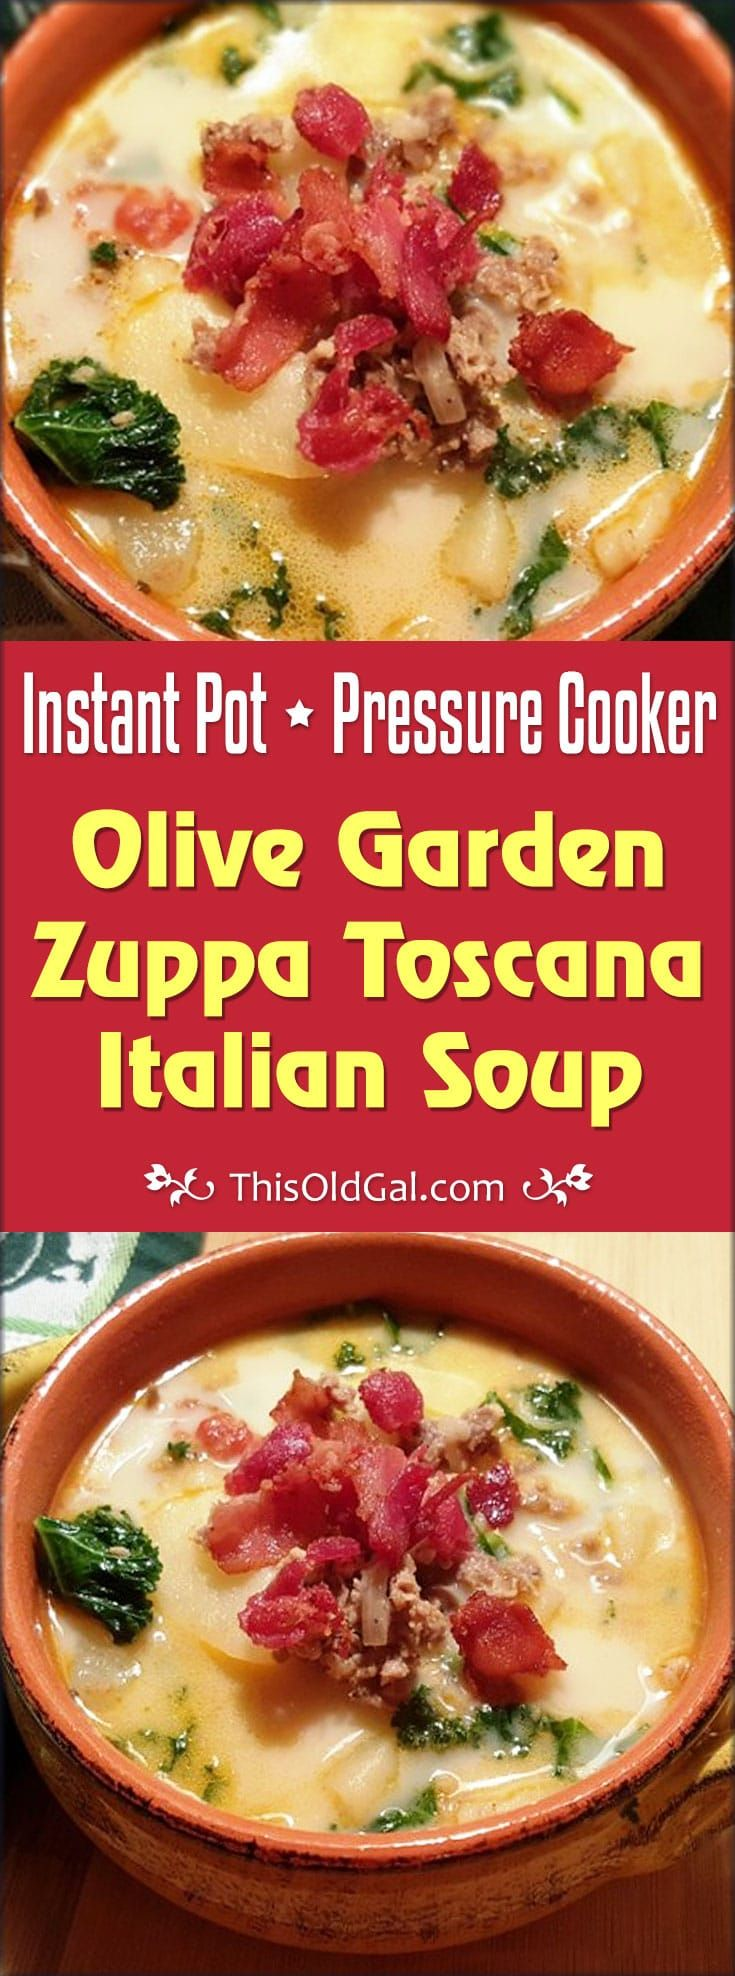 Pressure Cooker Olive Garden Zuppa Toscana Italian Soupis better then the restaurant and on your table in less than 30 minutes. Use Radishes instead of Potatoes to make it Low Carb and Keto! via @thisoldgalcooks